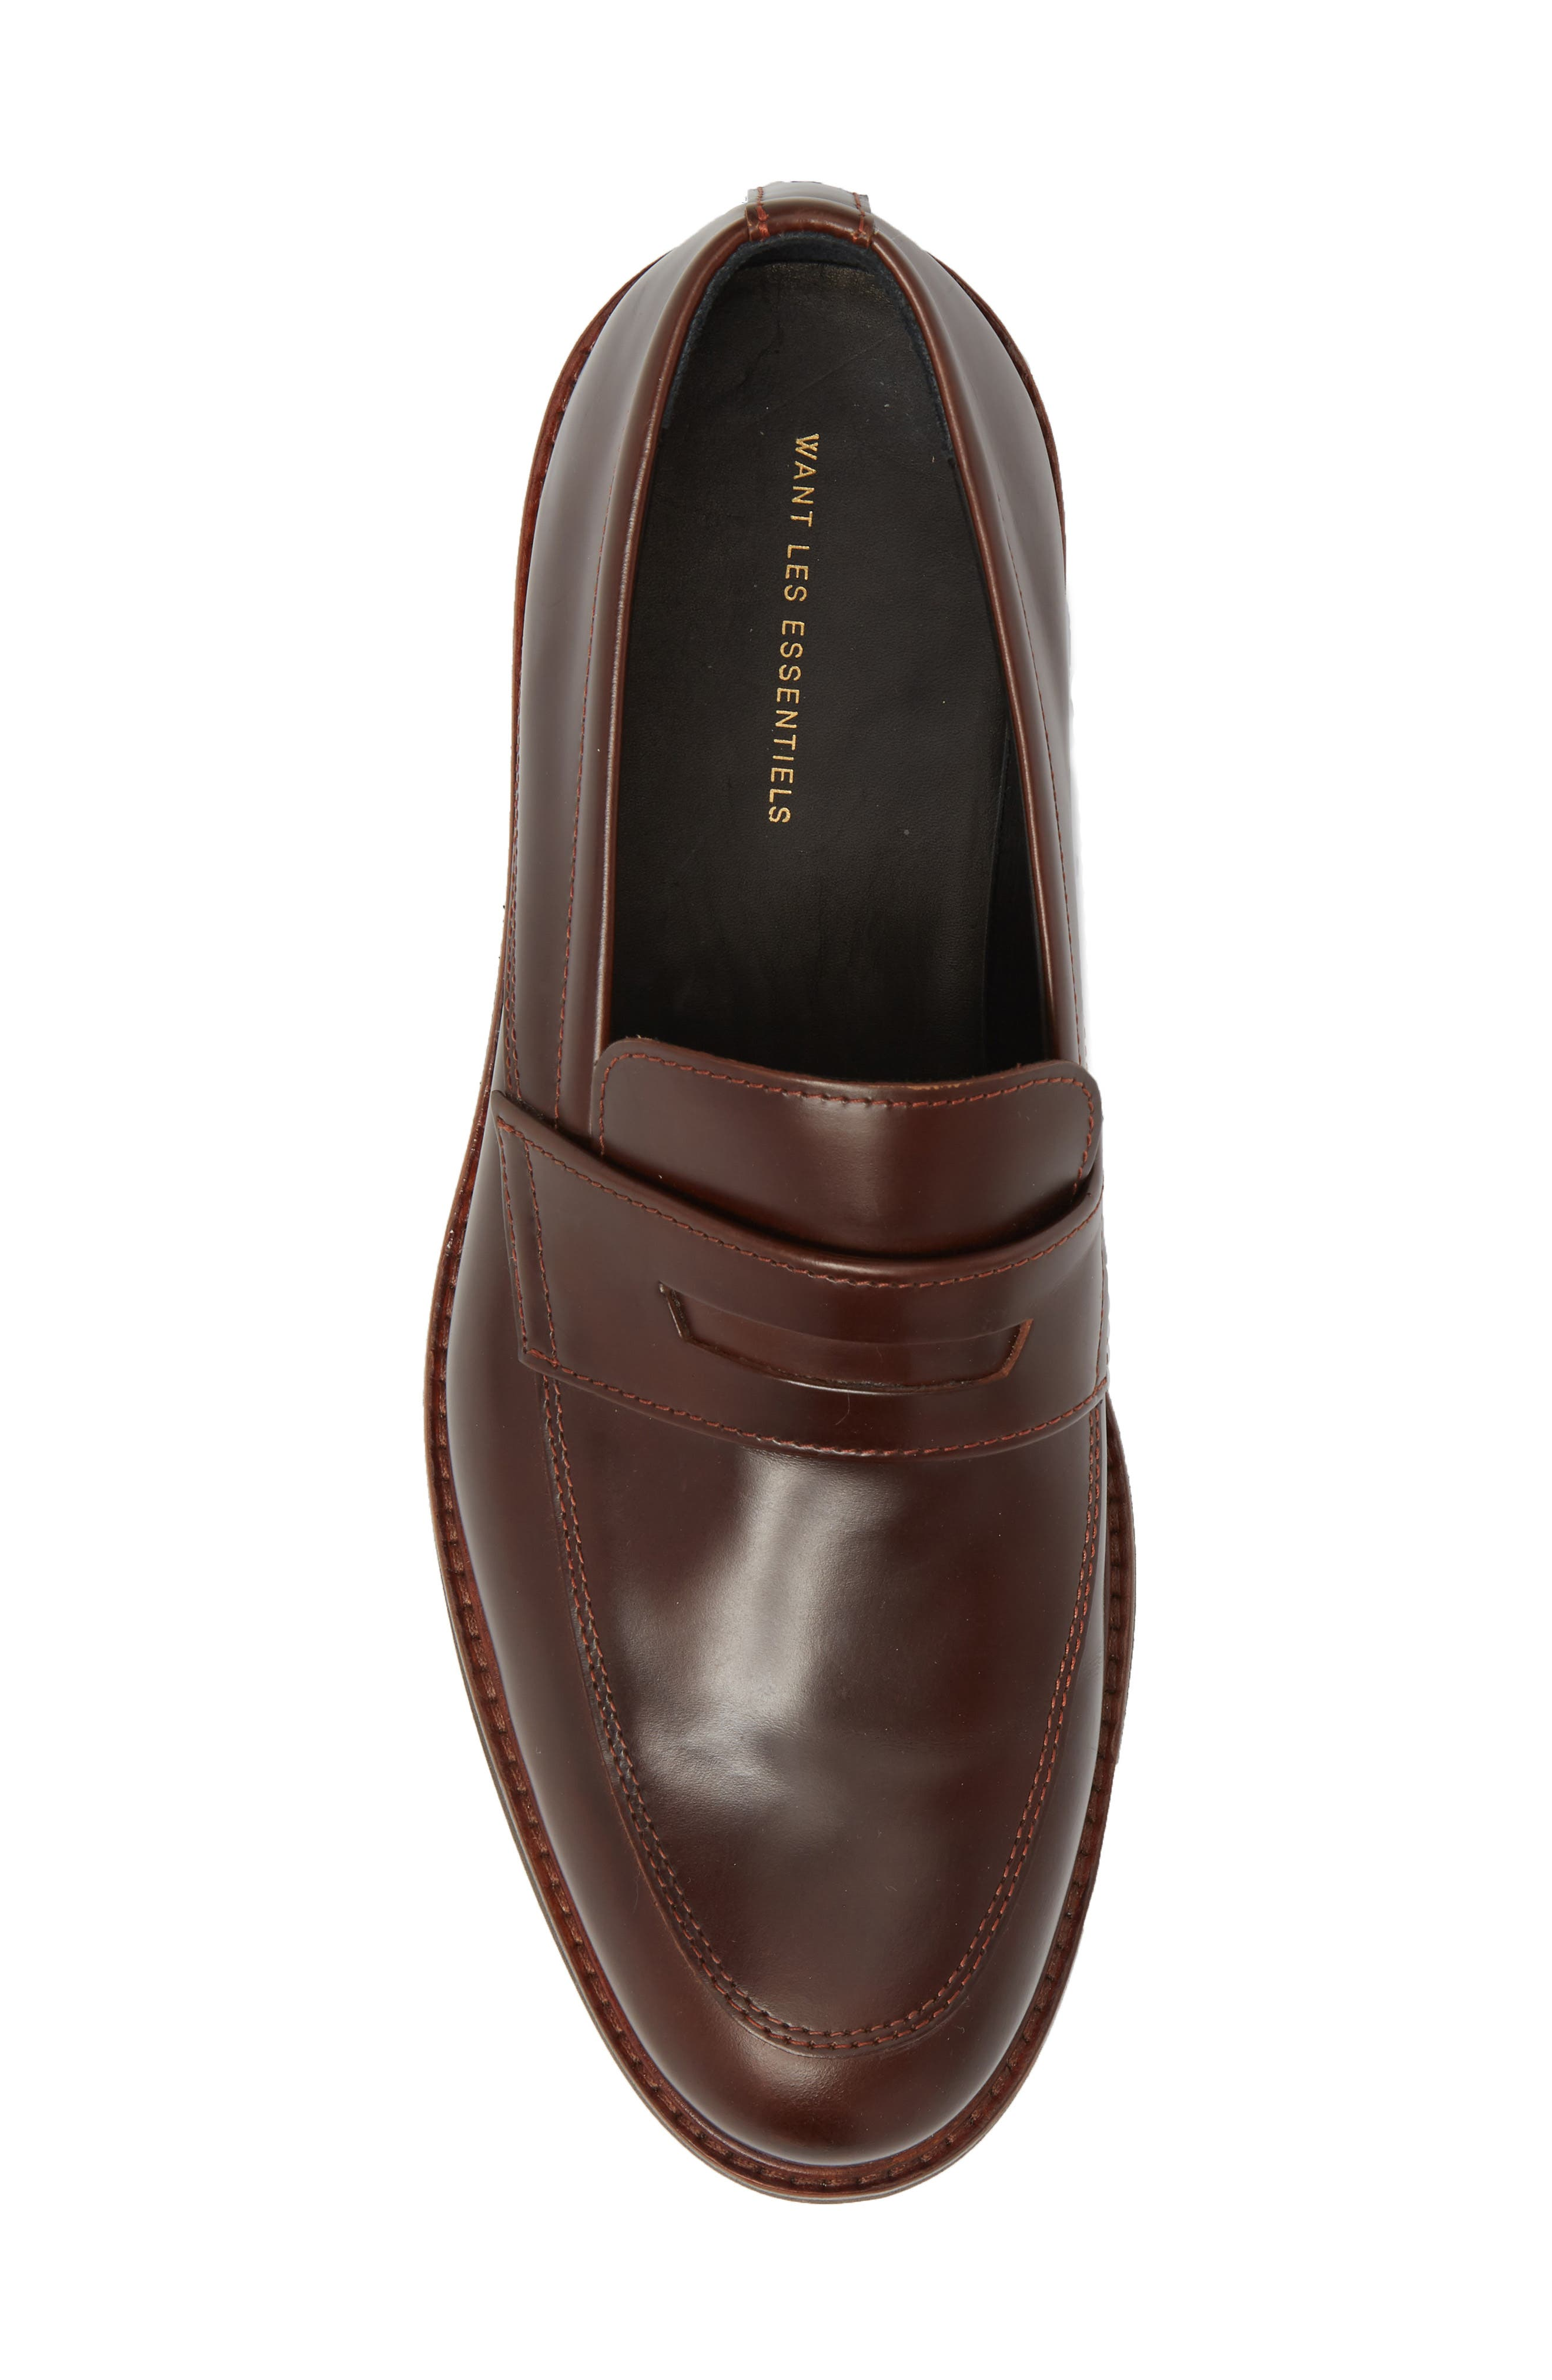 'Marcos' Loafer,                             Alternate thumbnail 5, color,                             Multi Brown/ Brown